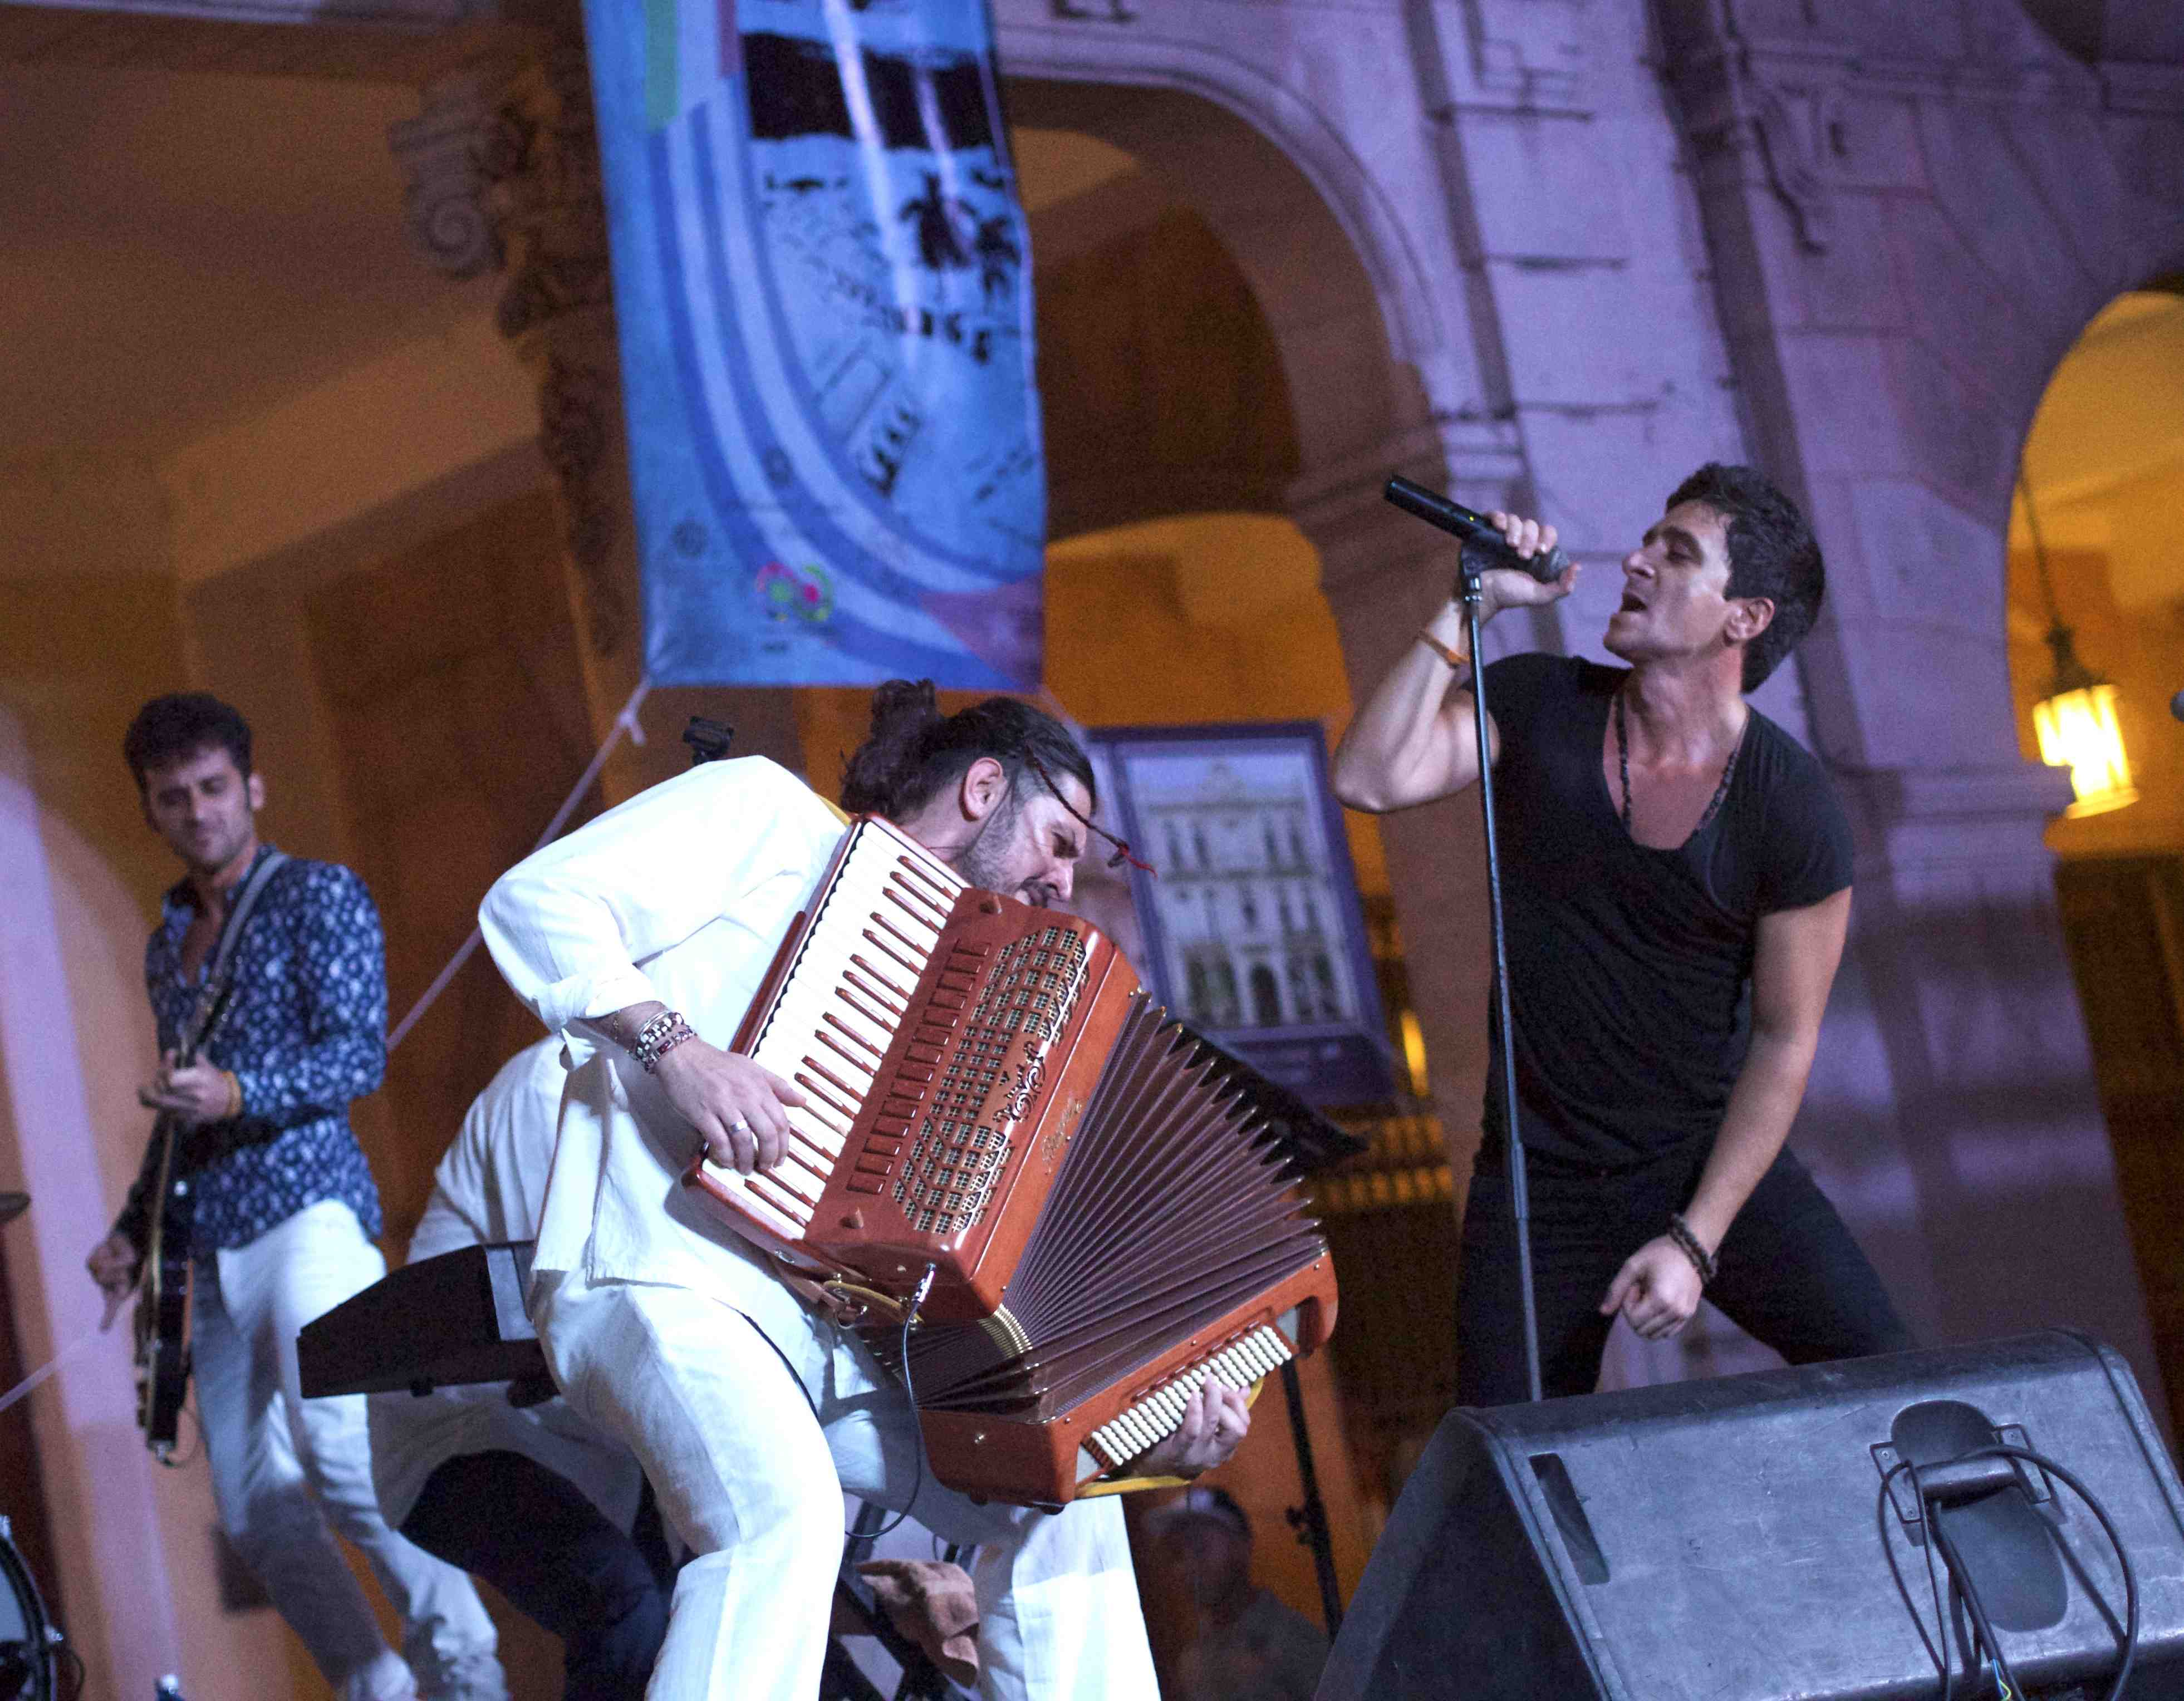 Marco Lo Russo and David Blanco during the concert Made in Italy in Old Square, Havana Cuba